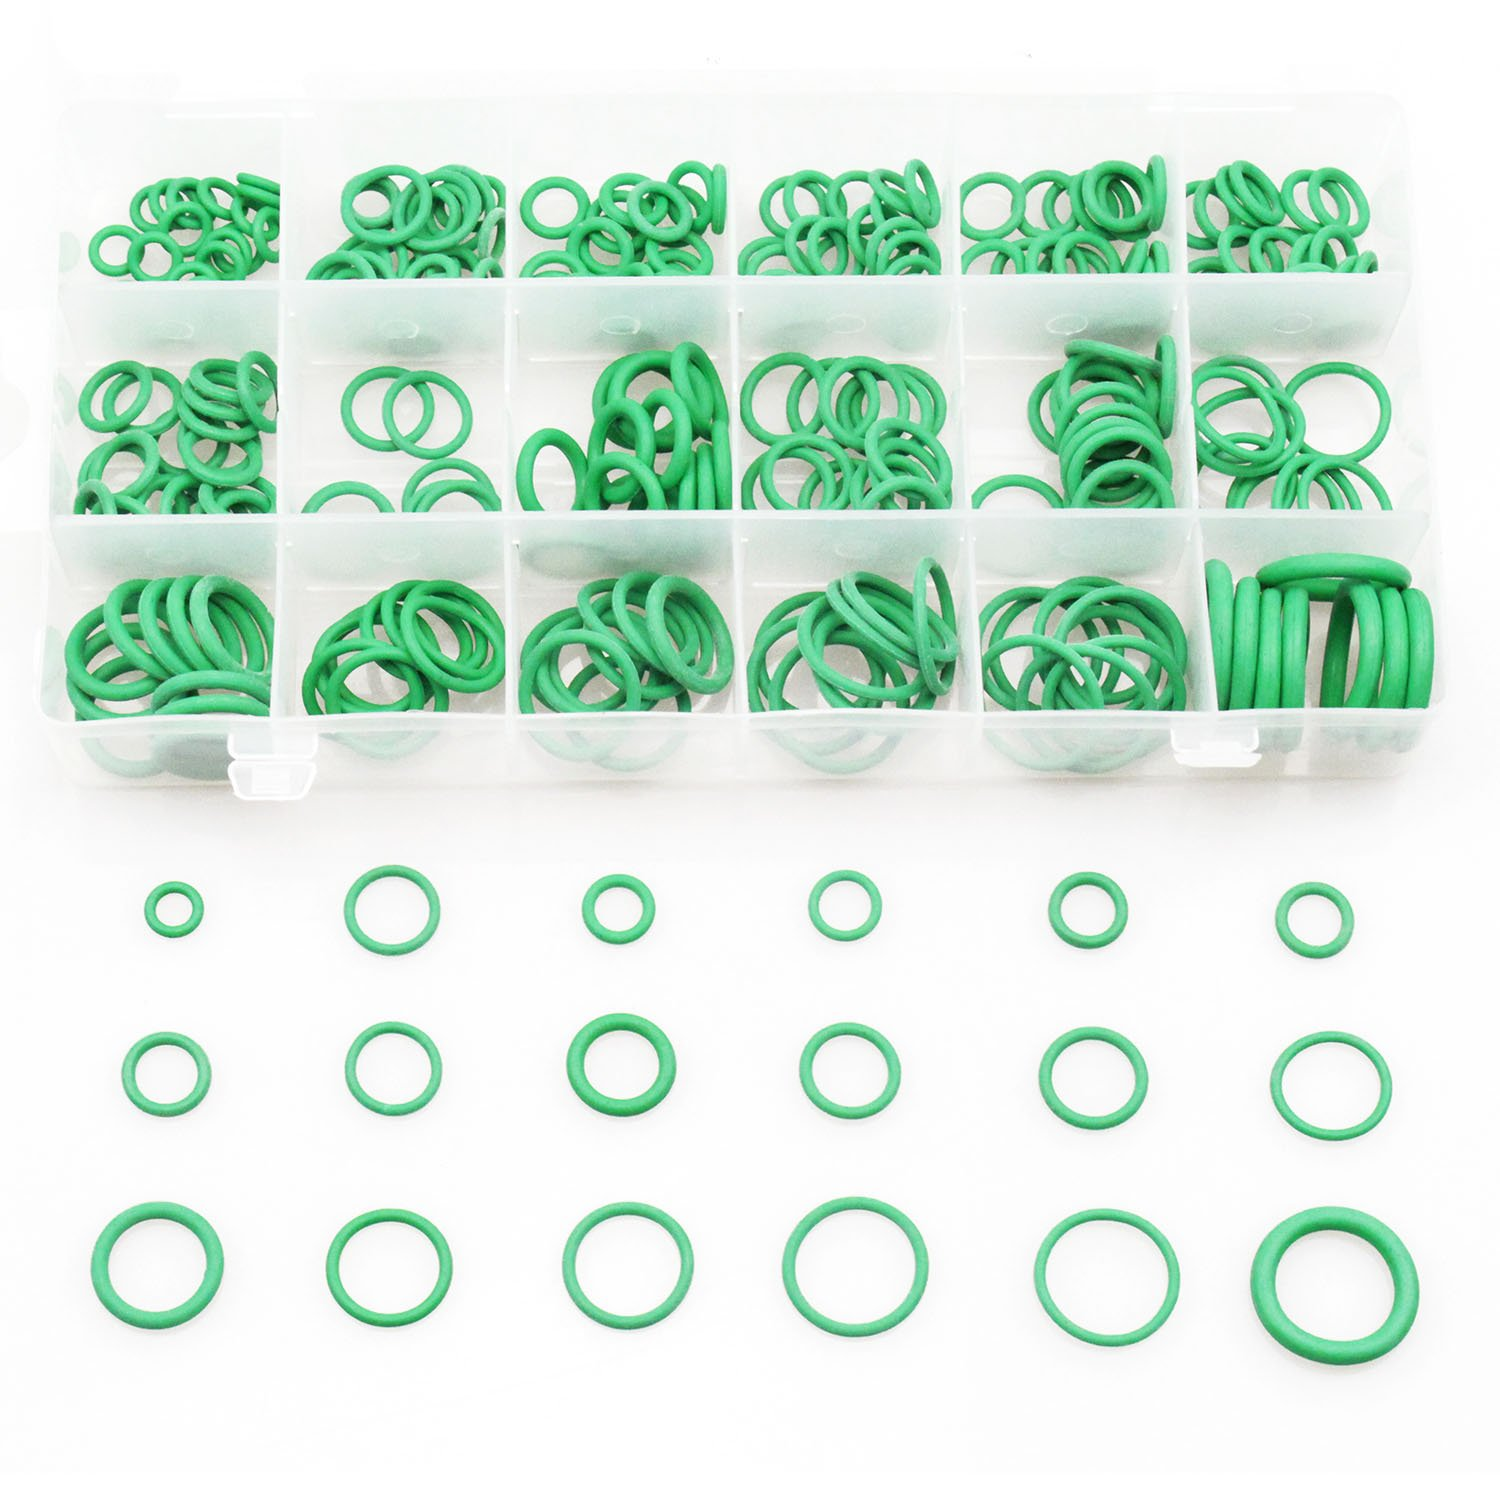 8 Sizes Rubber Grommet Kit Ring Assortment Set Electrical Gasket Tools for Wire, Cable and Plug (180 Pcs) Sutemribor